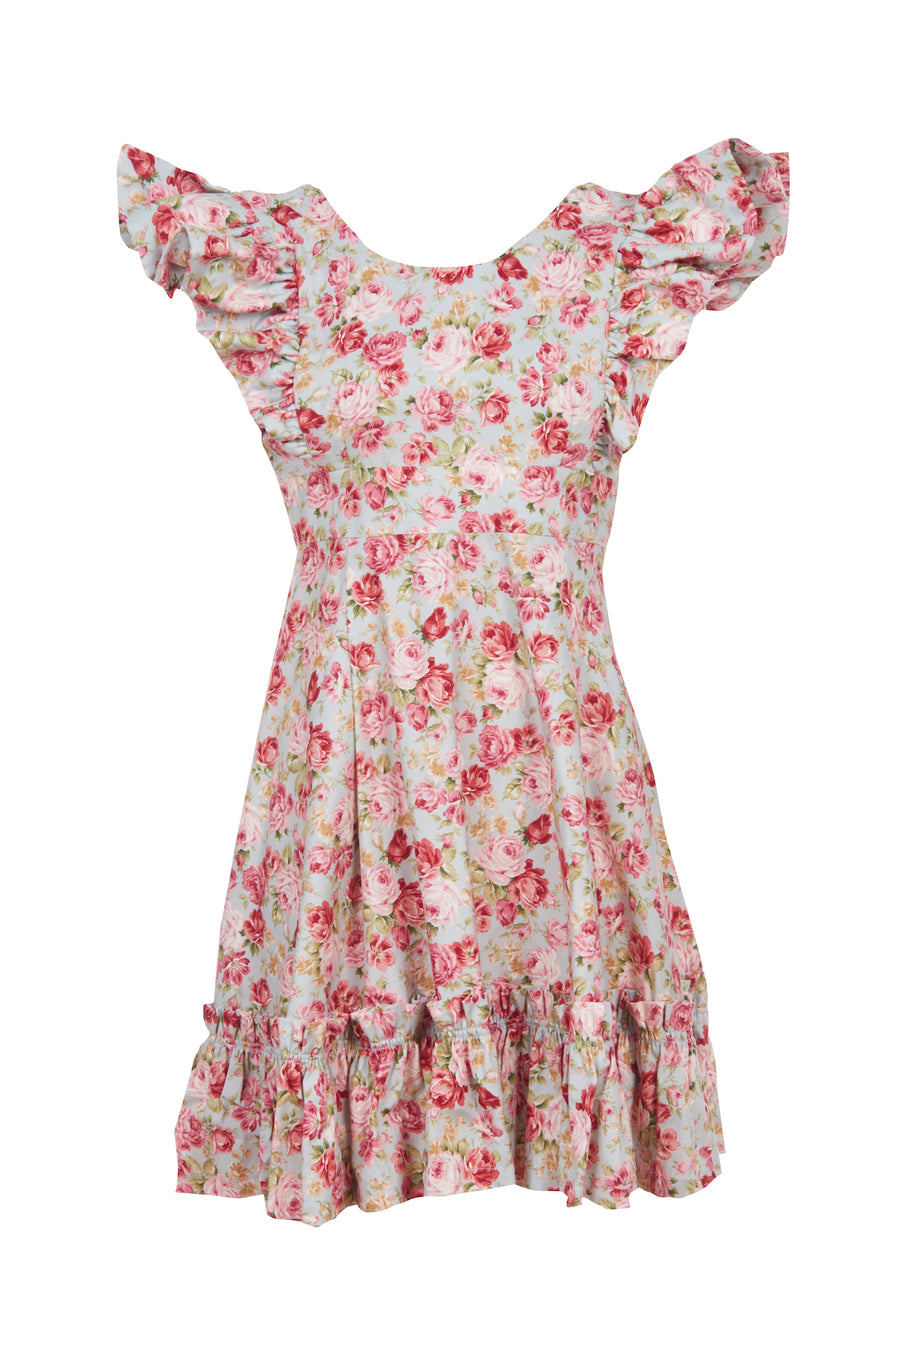 Blue Rose Cotton Quinoa Dress